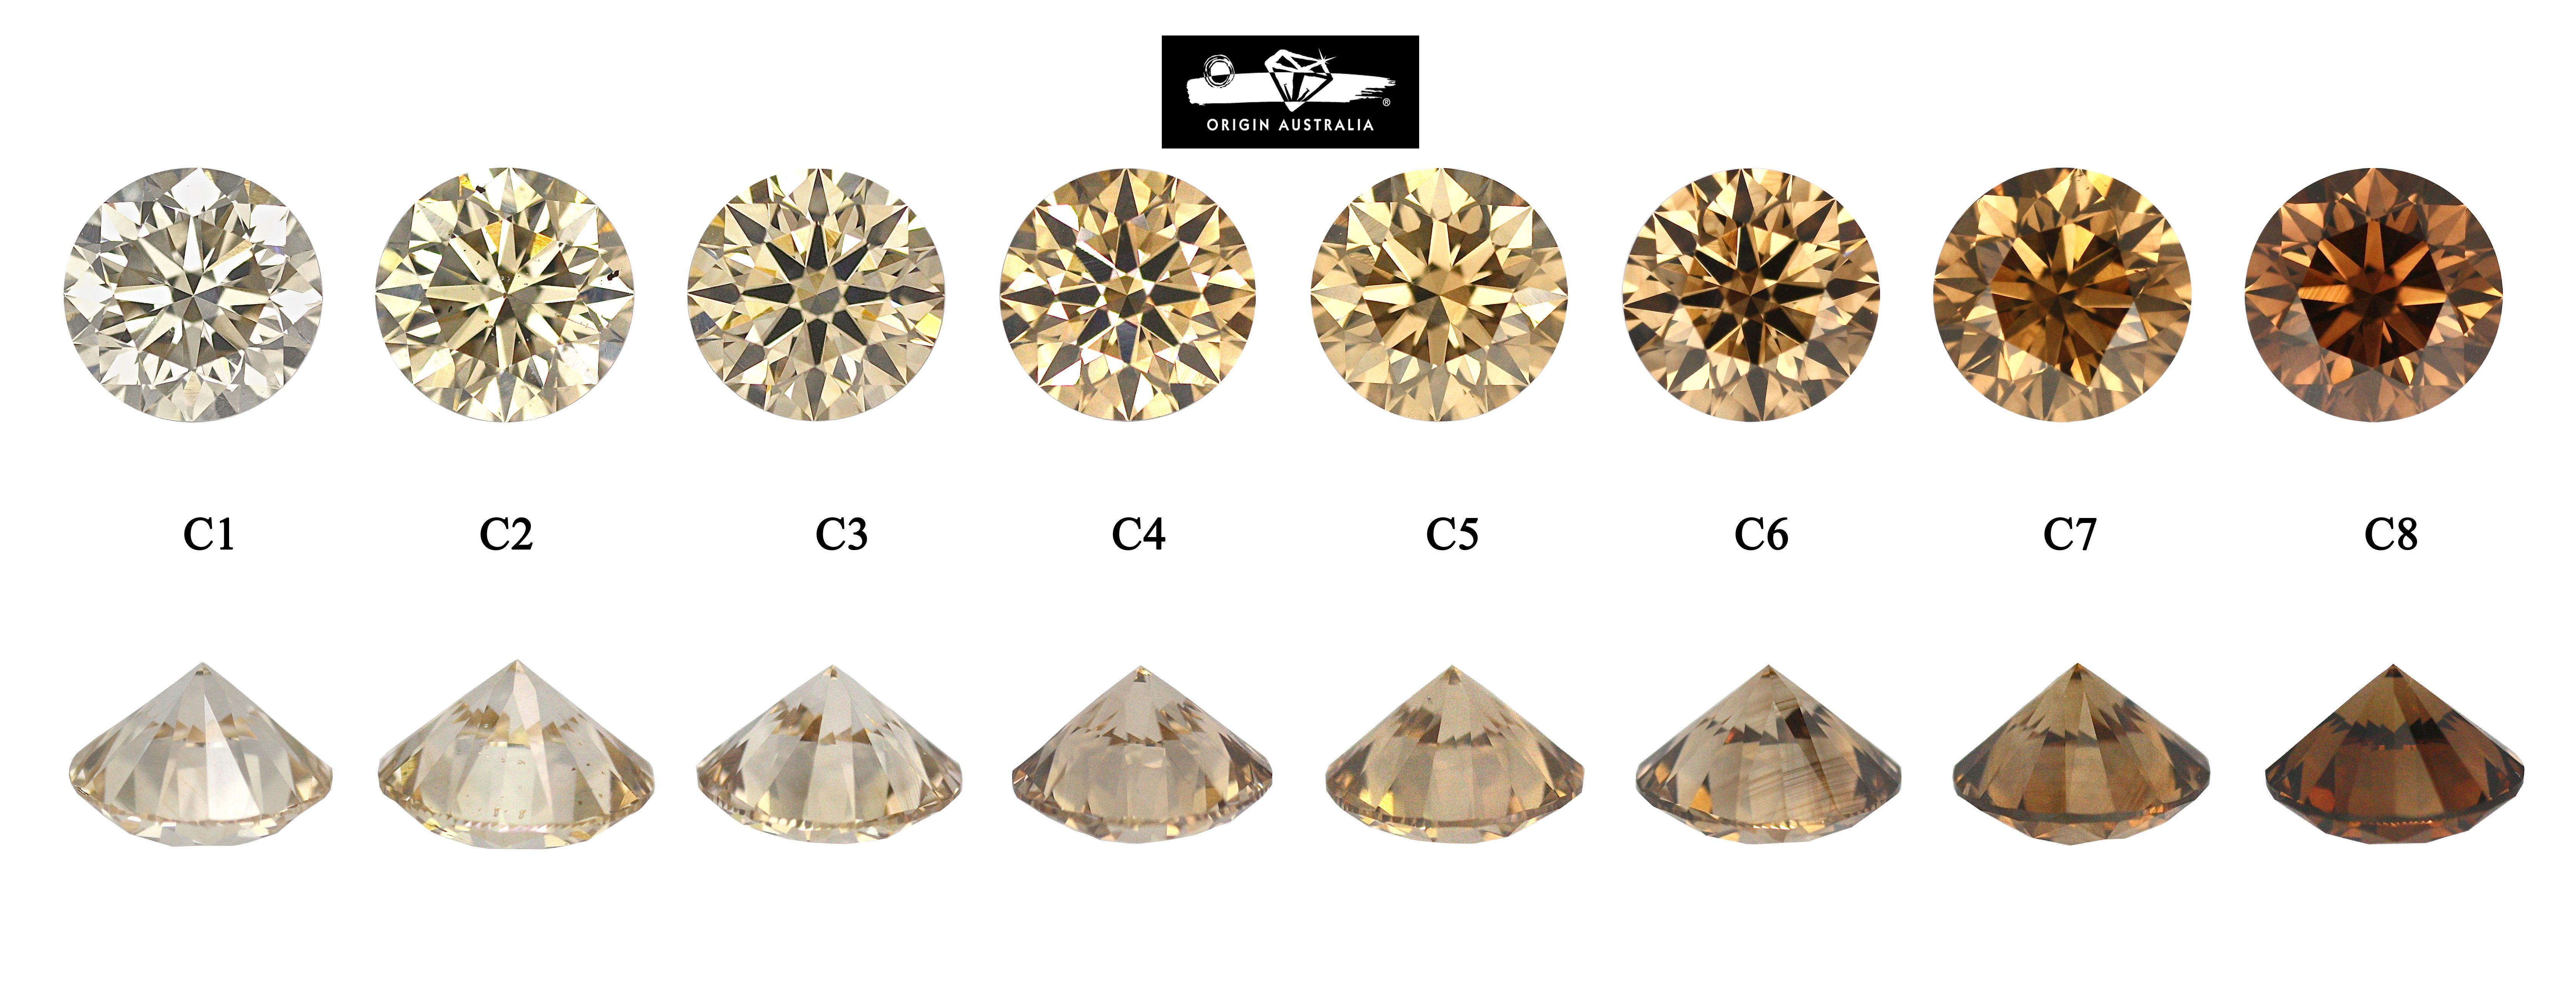 leading ring buying house s chart a diamond final colour australia jewellery cerrone